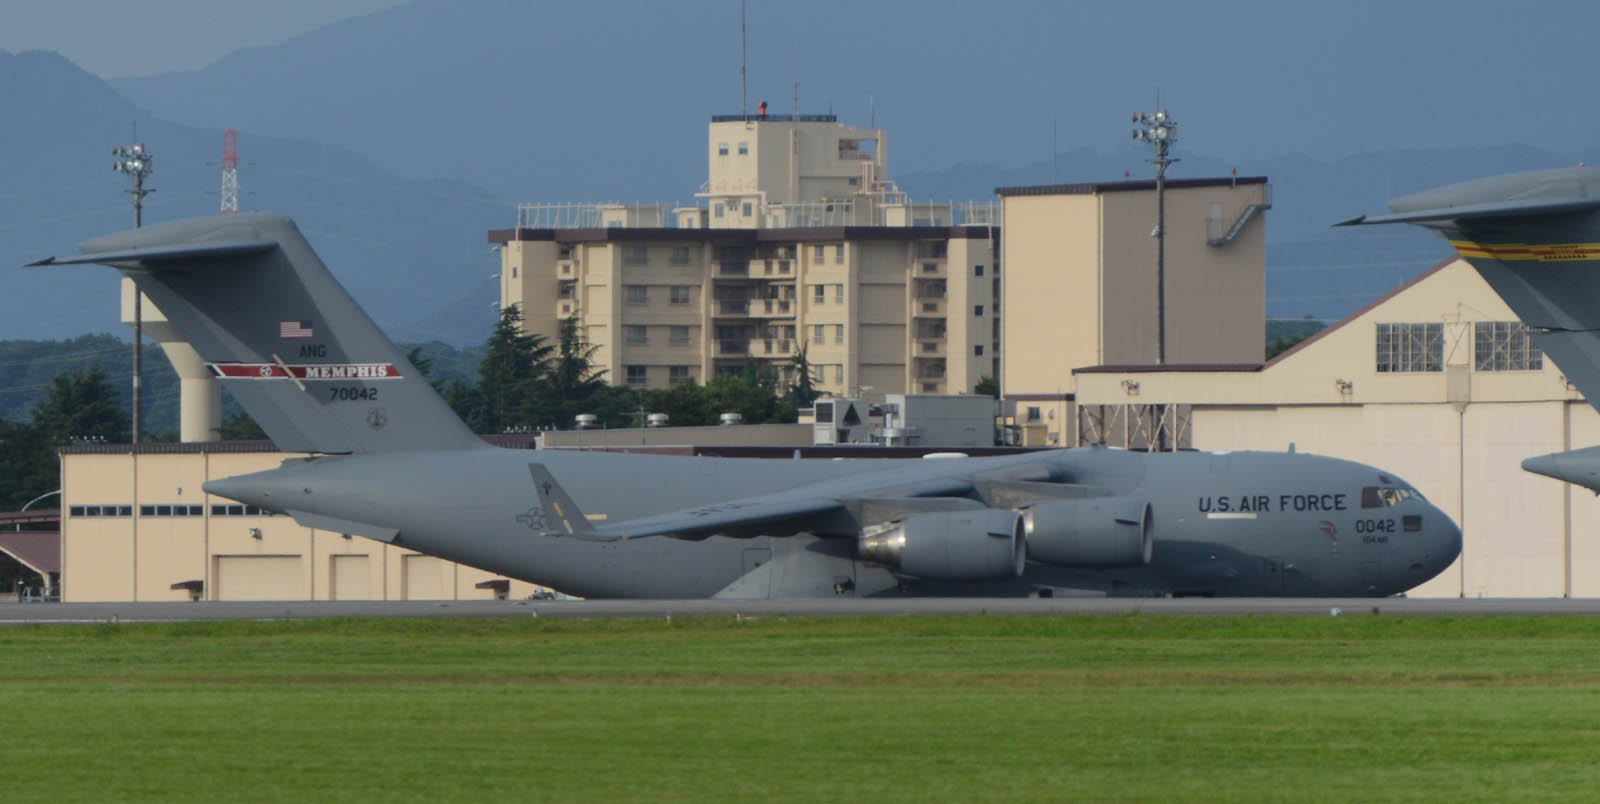 Fw:7月17日夜 C-17 Tennessee ANG